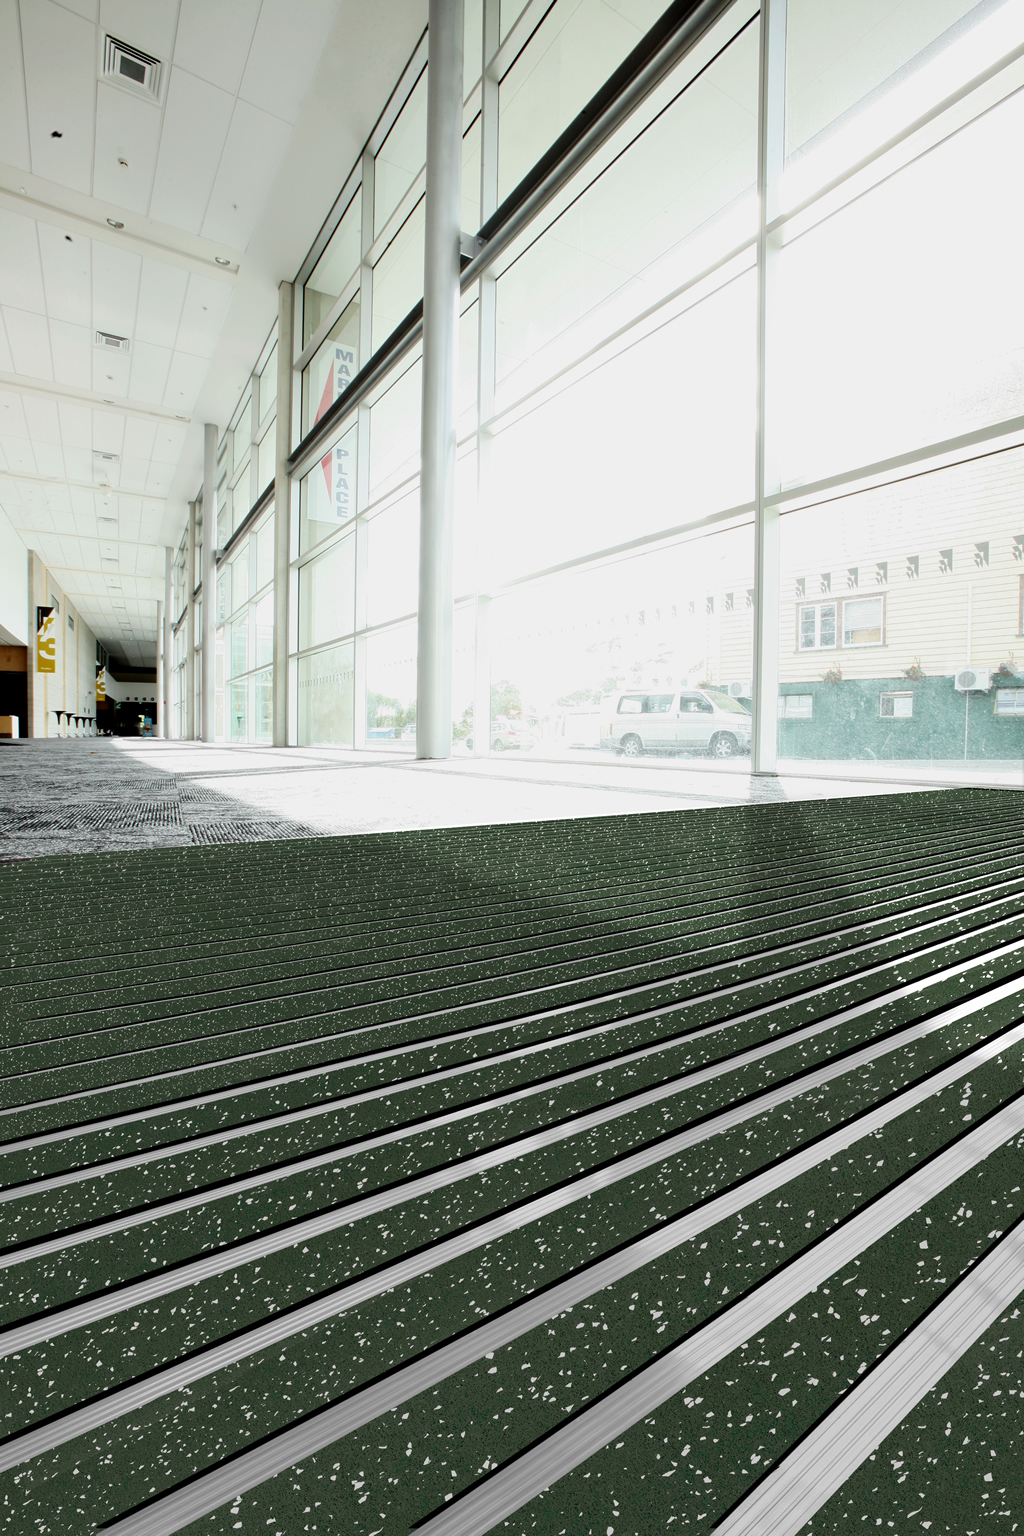 Introducing ReTread – your latest choice in Entrance Matting from Advance Flooring